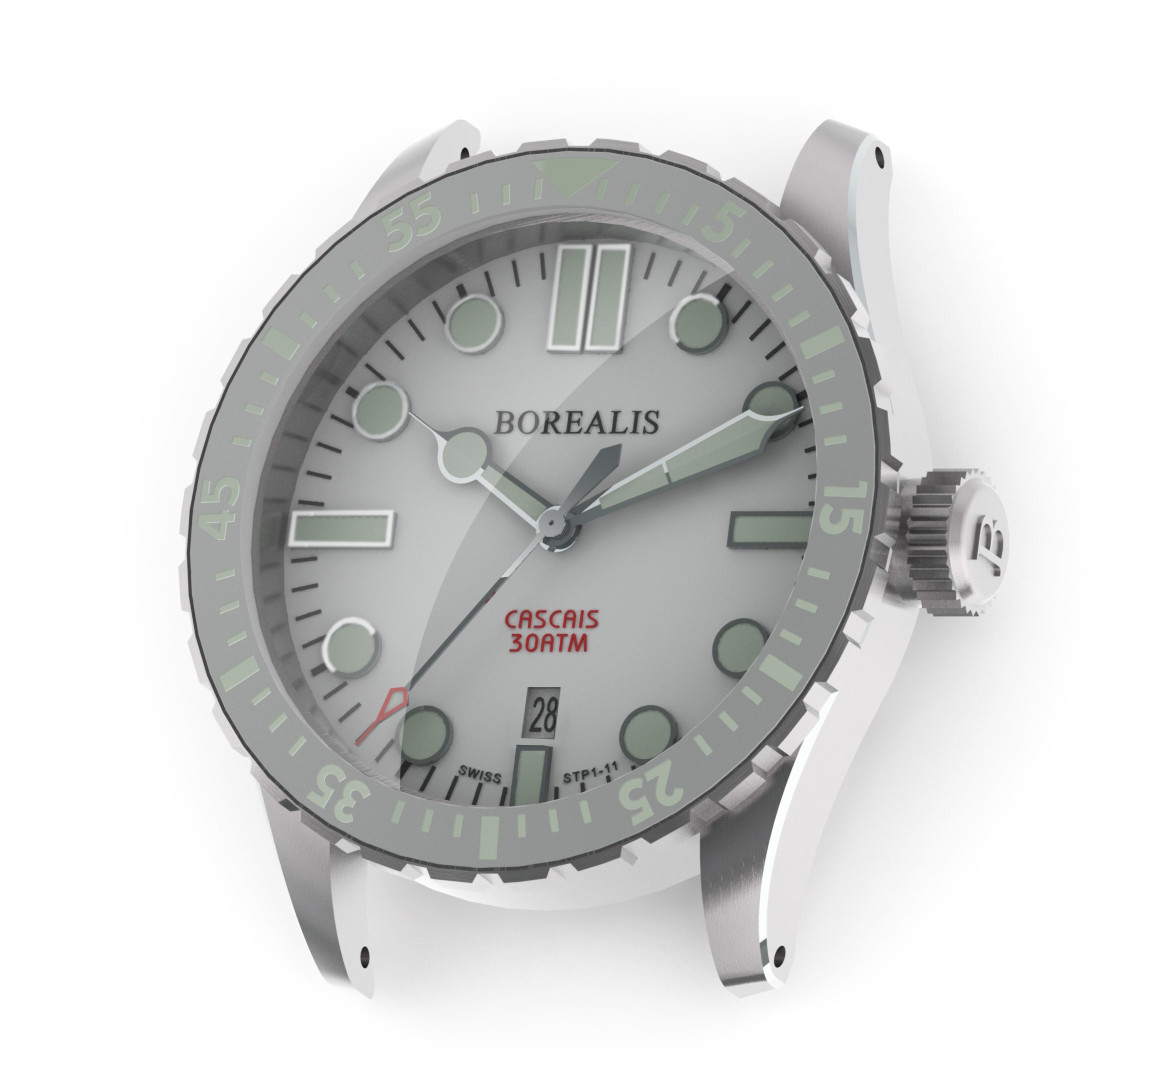 Borealis Cascais White Dial Cathedral Hands Date C3 X1 Lume